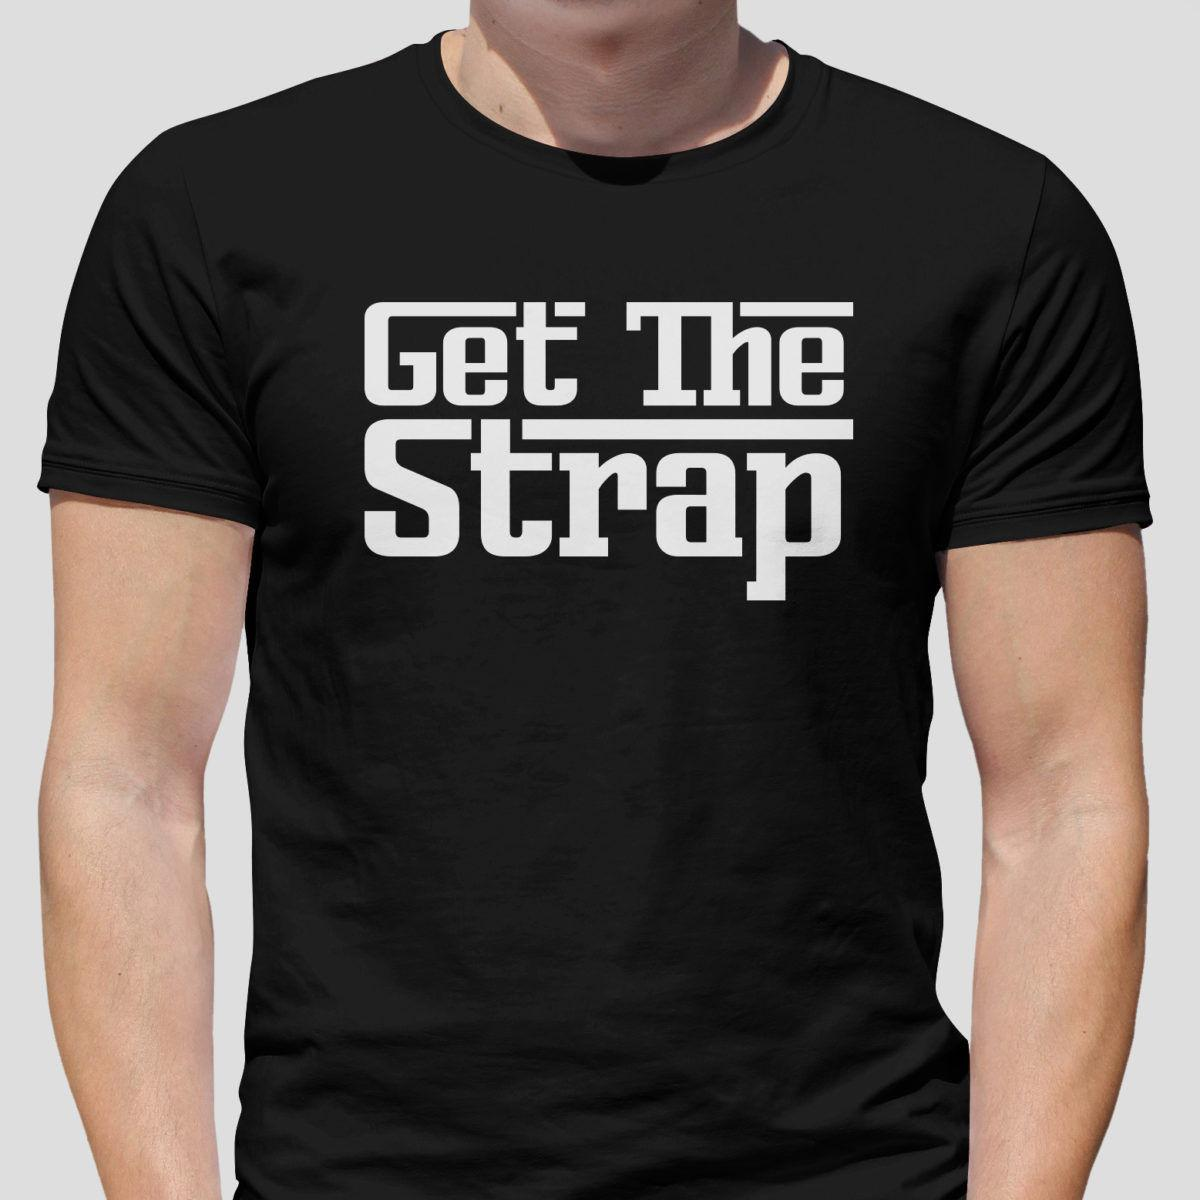 52cd0a94c 50 Cent Get The Strap, Rap, Hip Hop T Shirt NEW & ALL SIZES Funny Unisex  Casual Funny T Shirts Cheap As T Shirts From Rocktothetop, $12.96|  DHgate.Com